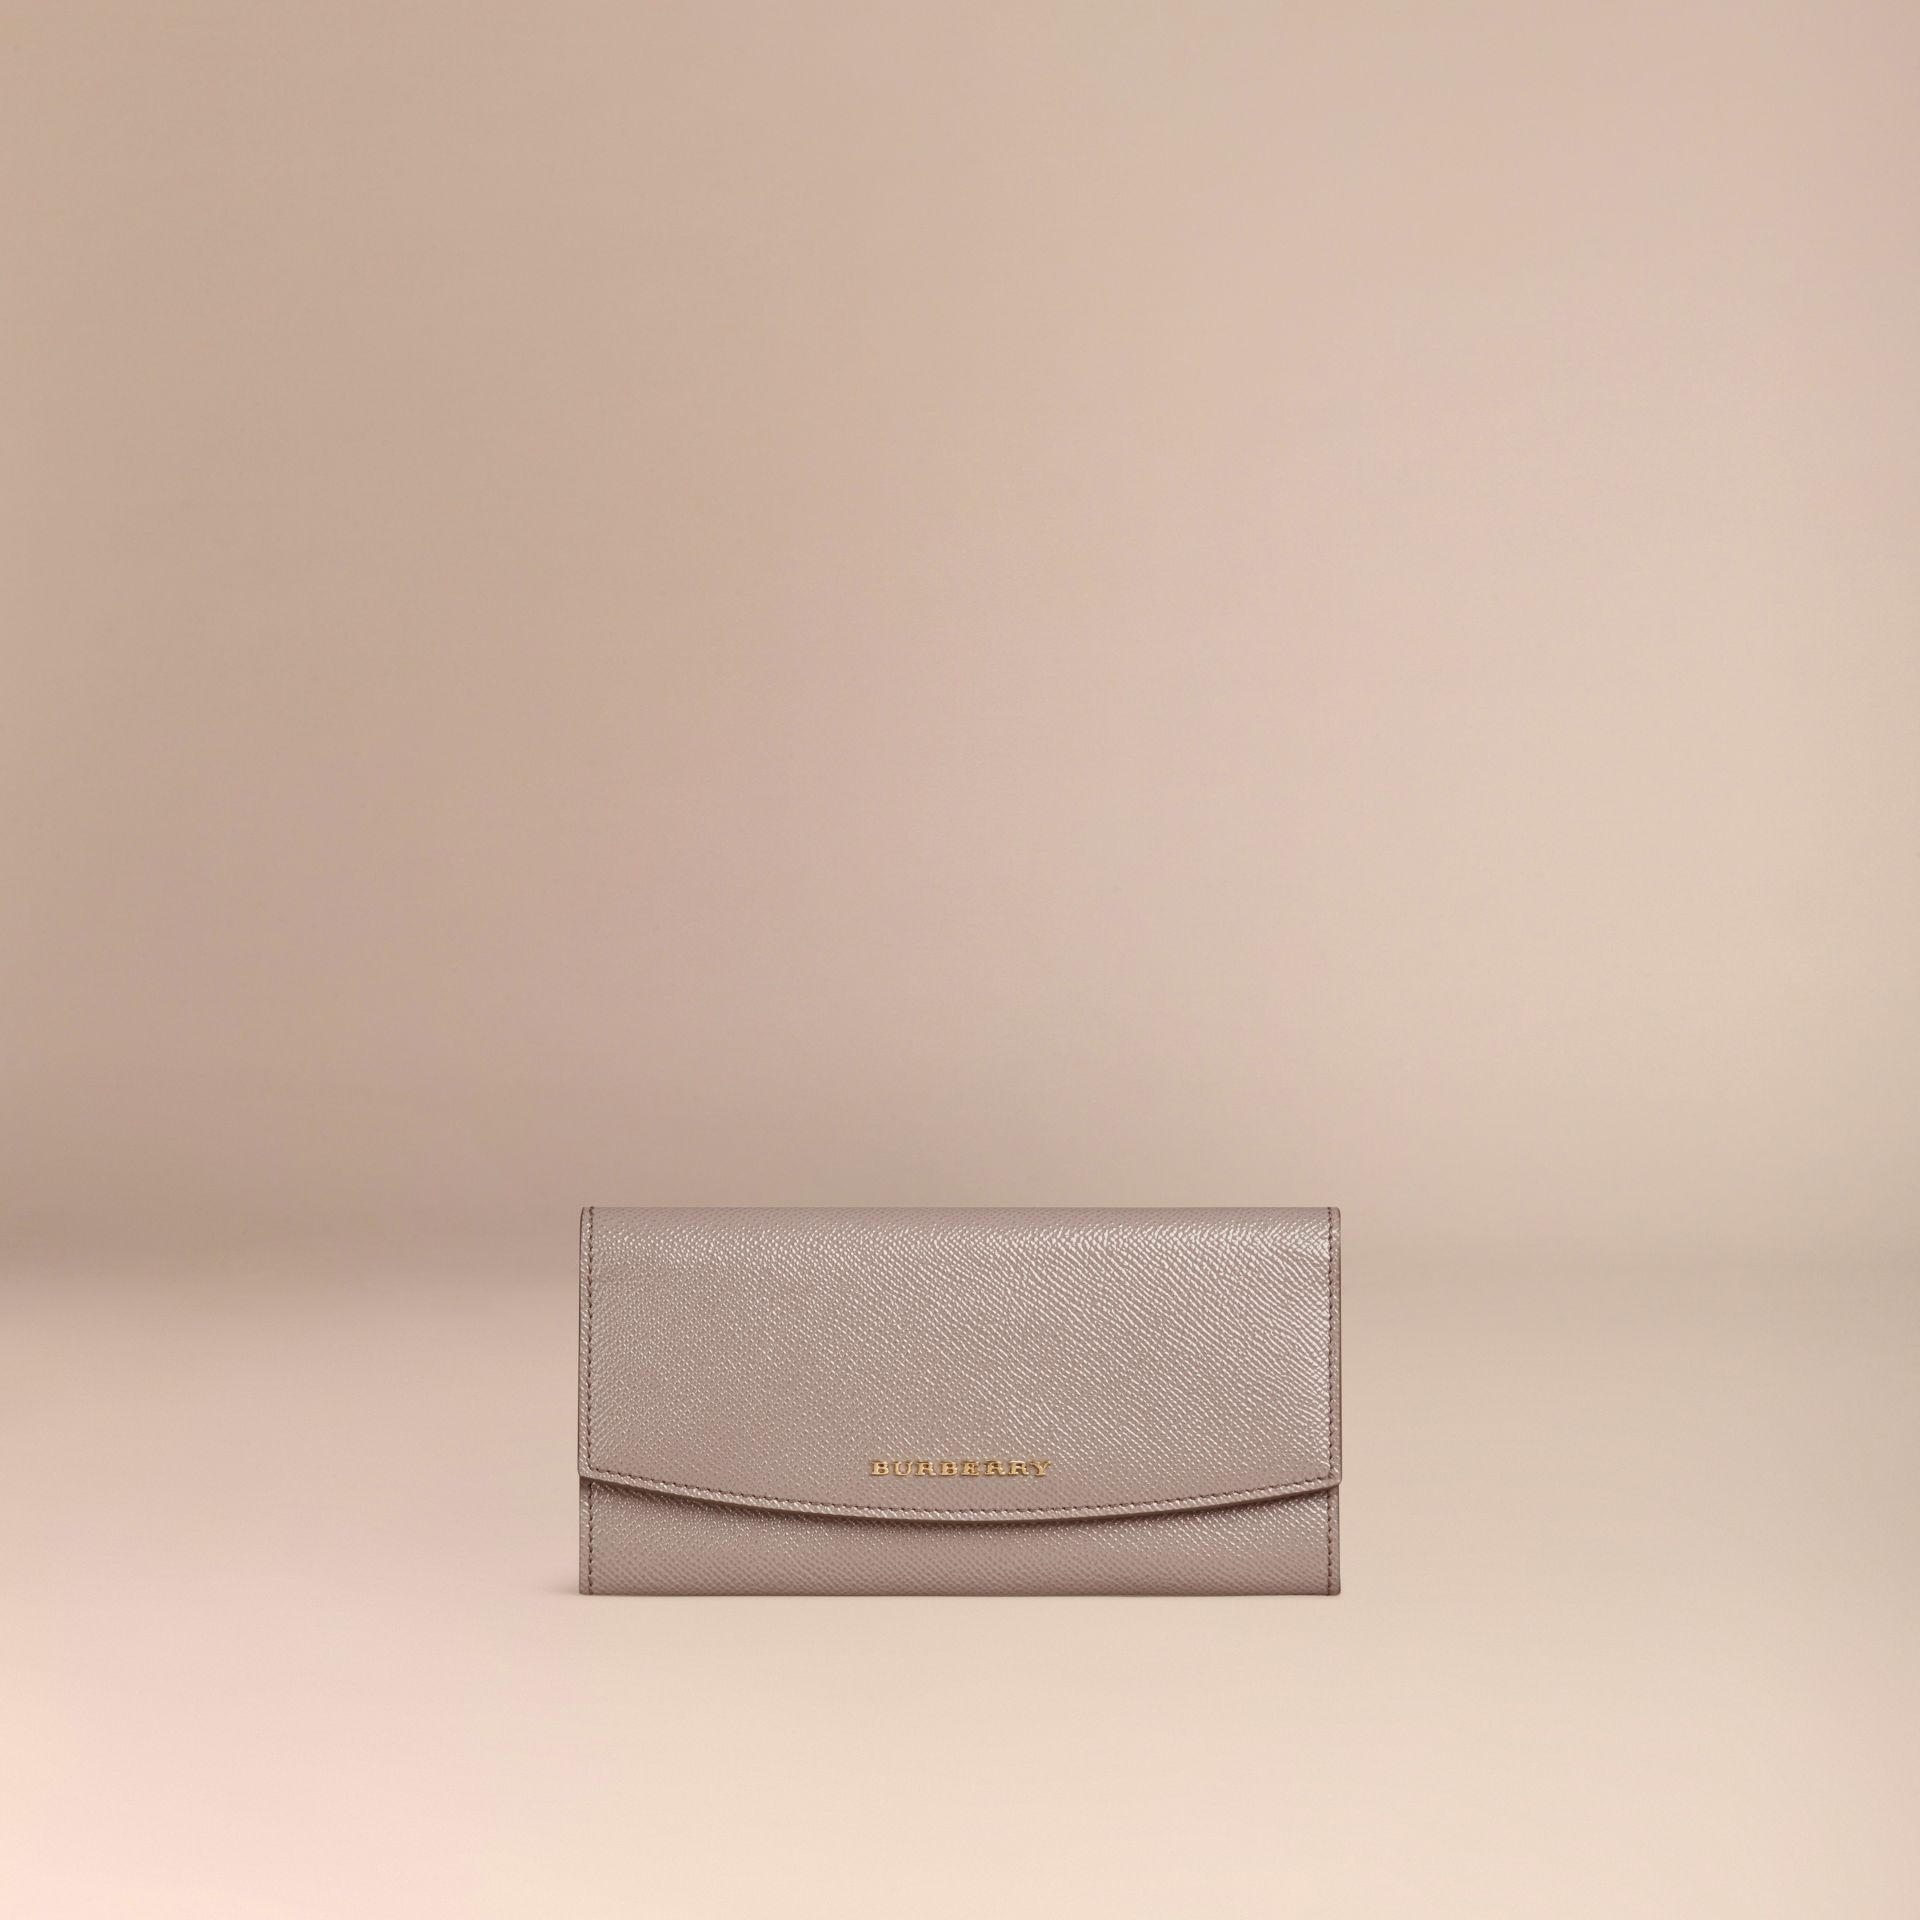 Pale grey Patent London Leather Continental Wallet Pale Grey - gallery image 3